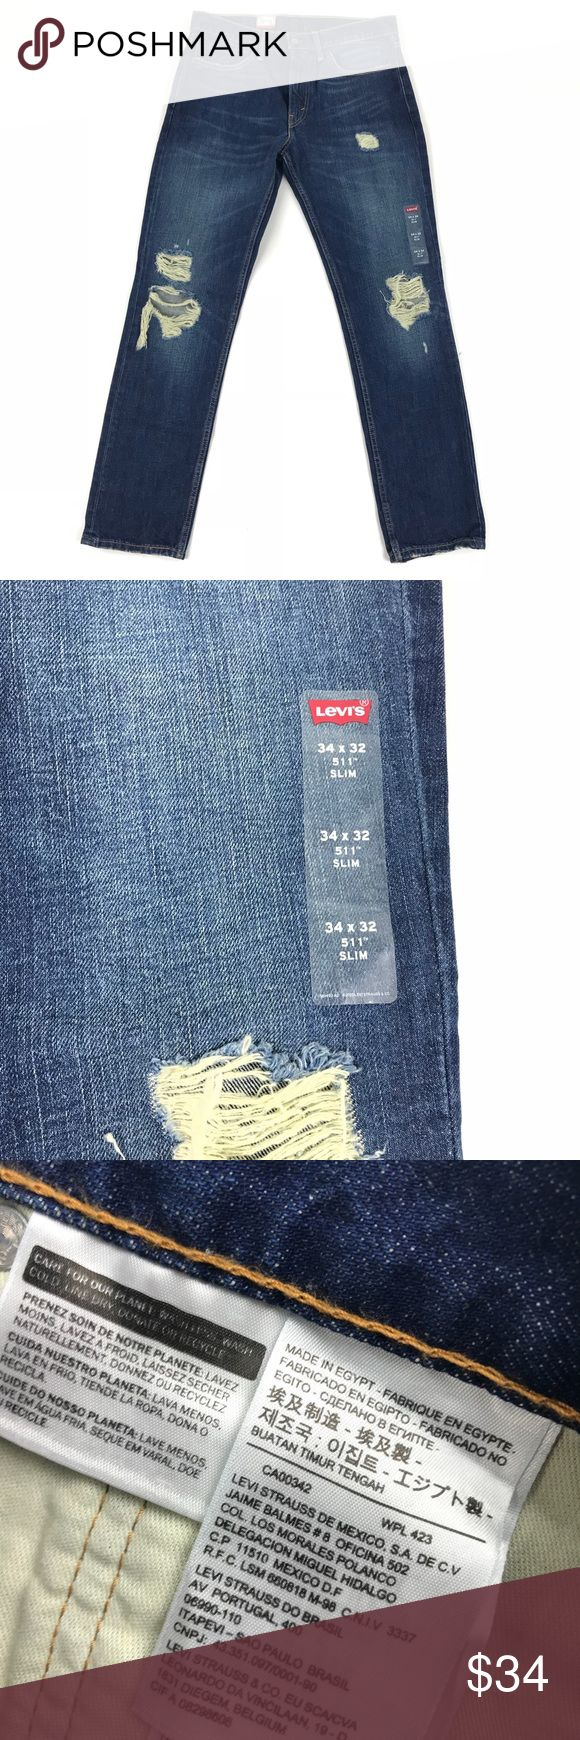 NWT LEVI'S 511 Jeans 32 x 32 Mens Blue Distressed NWT LEVI'S 511 Jeans 32 x 32 Mens Blue Distressed  Very nice pair of jeans. Brand new with tags. Never worn.   Actual size is different than size on tags. Levi's Jeans Slim Straight #mensjeansbrands